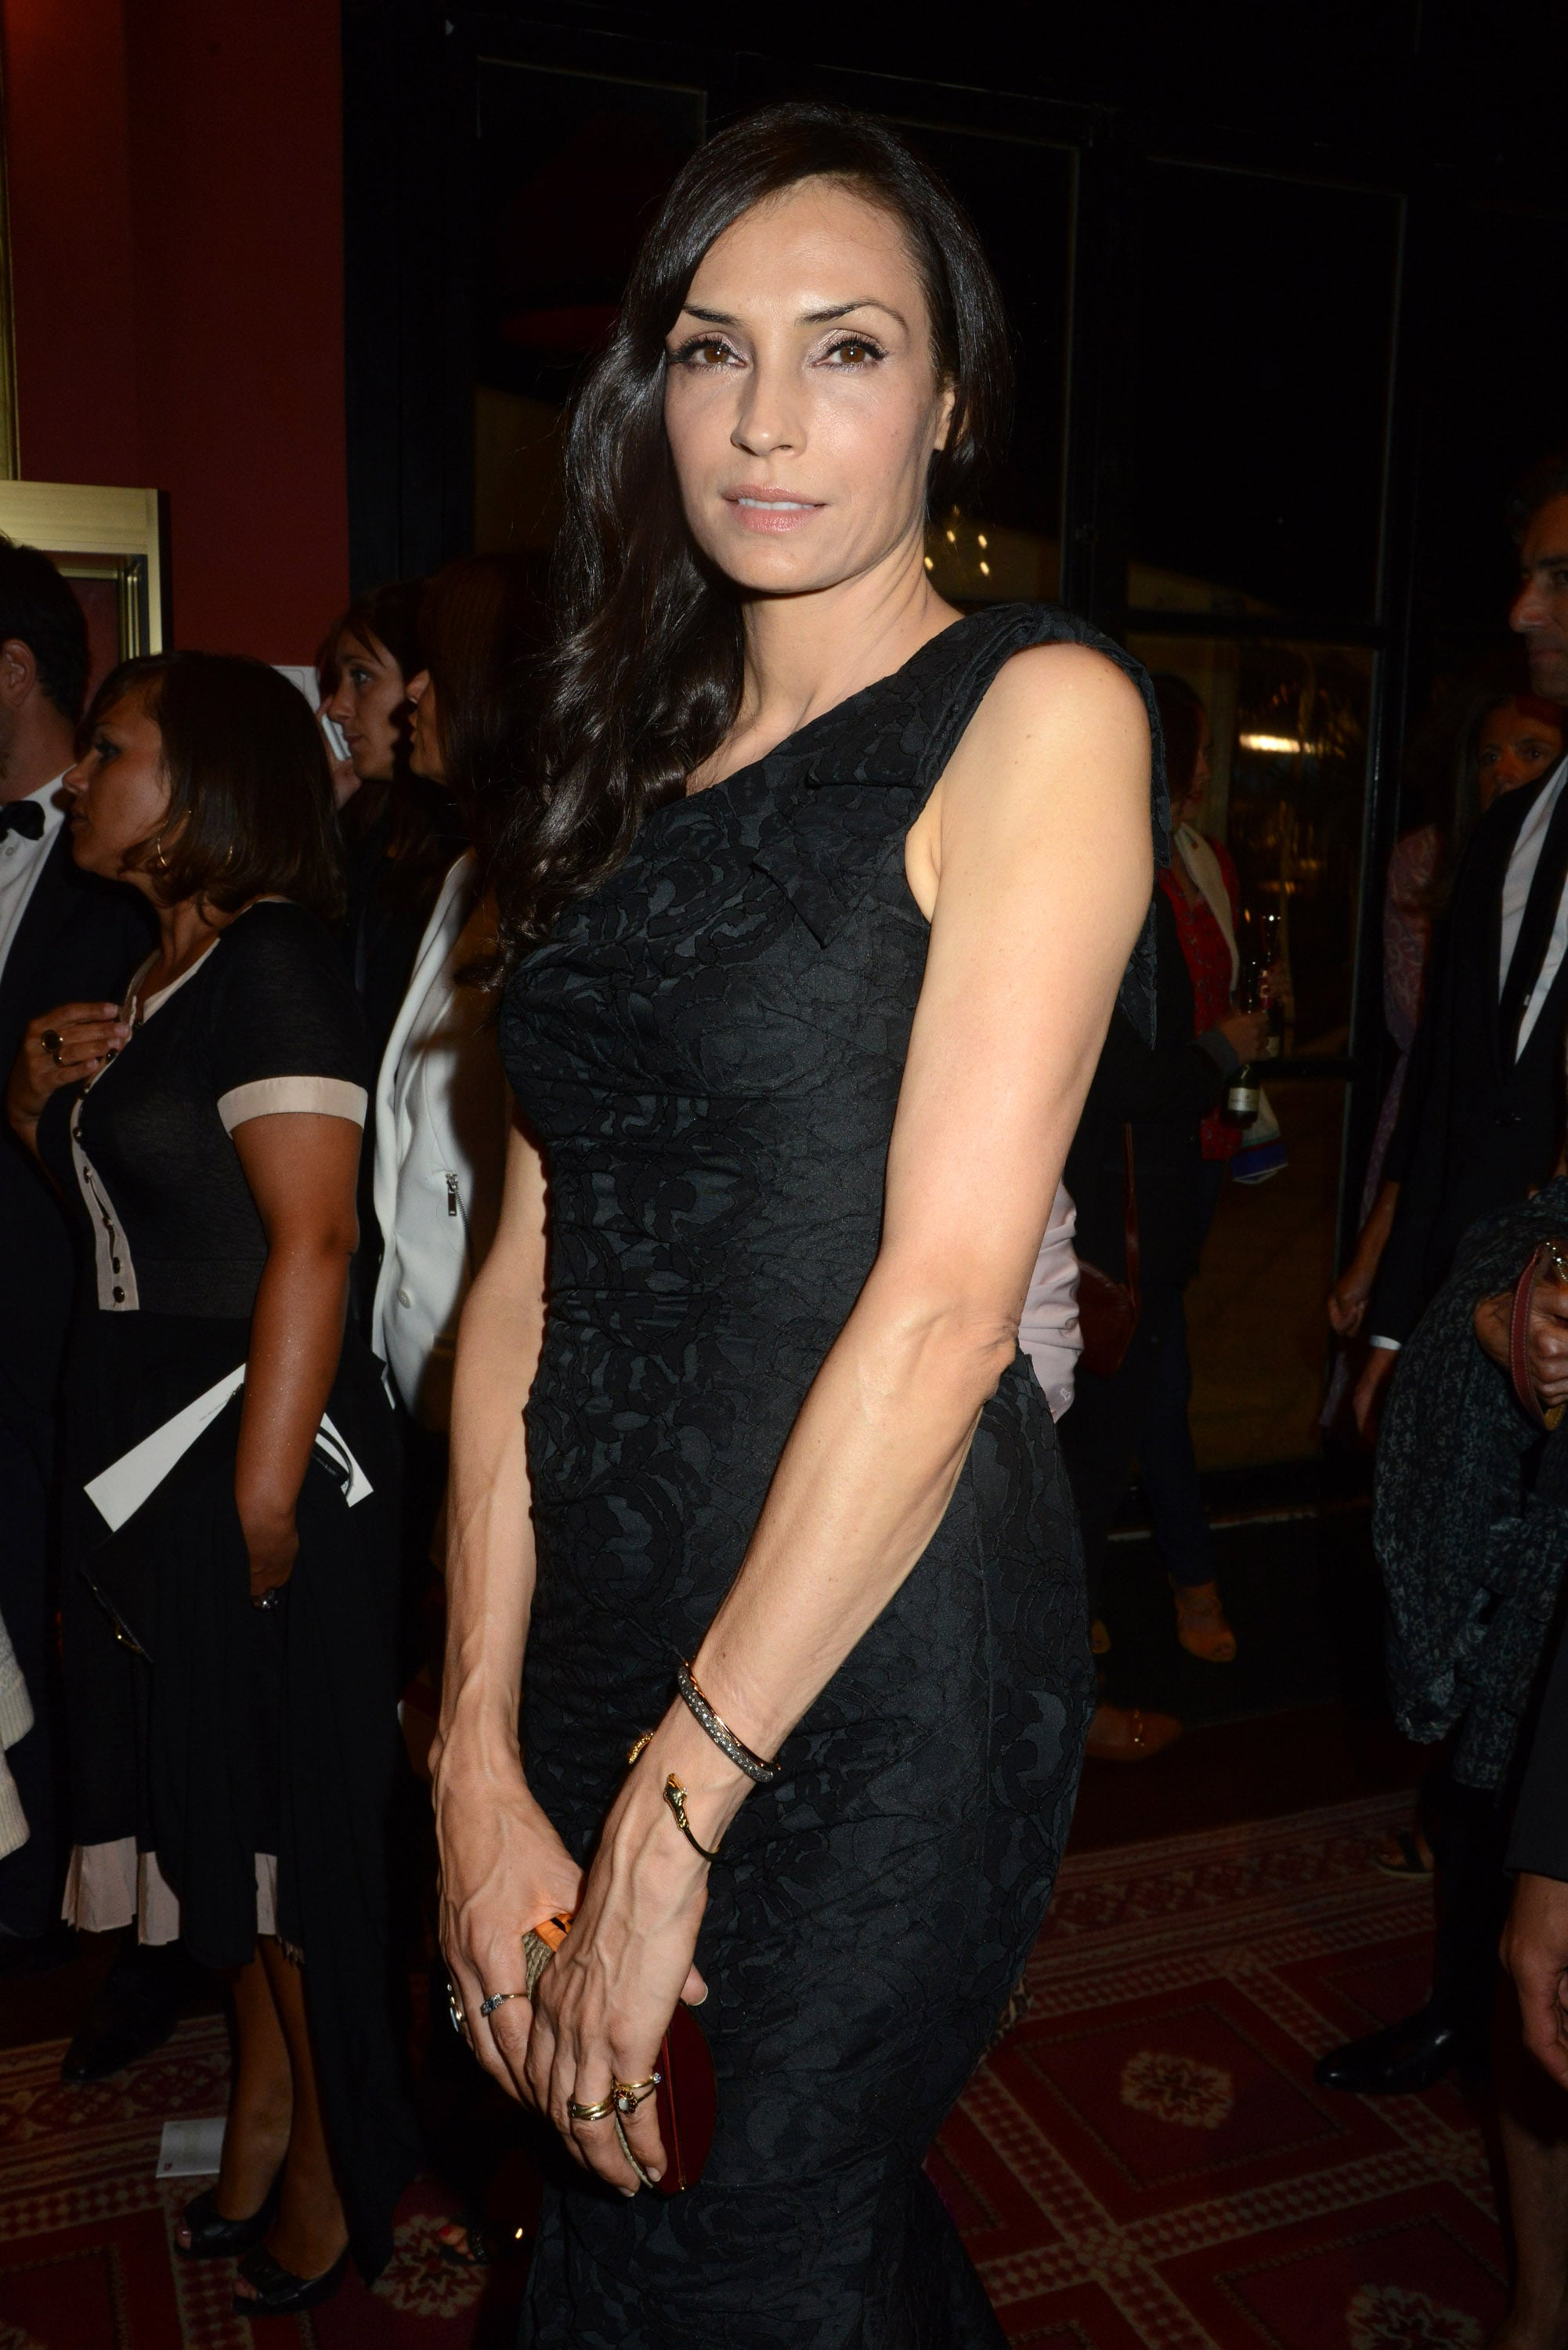 Famke Janssen was among the guests at the festival in France.